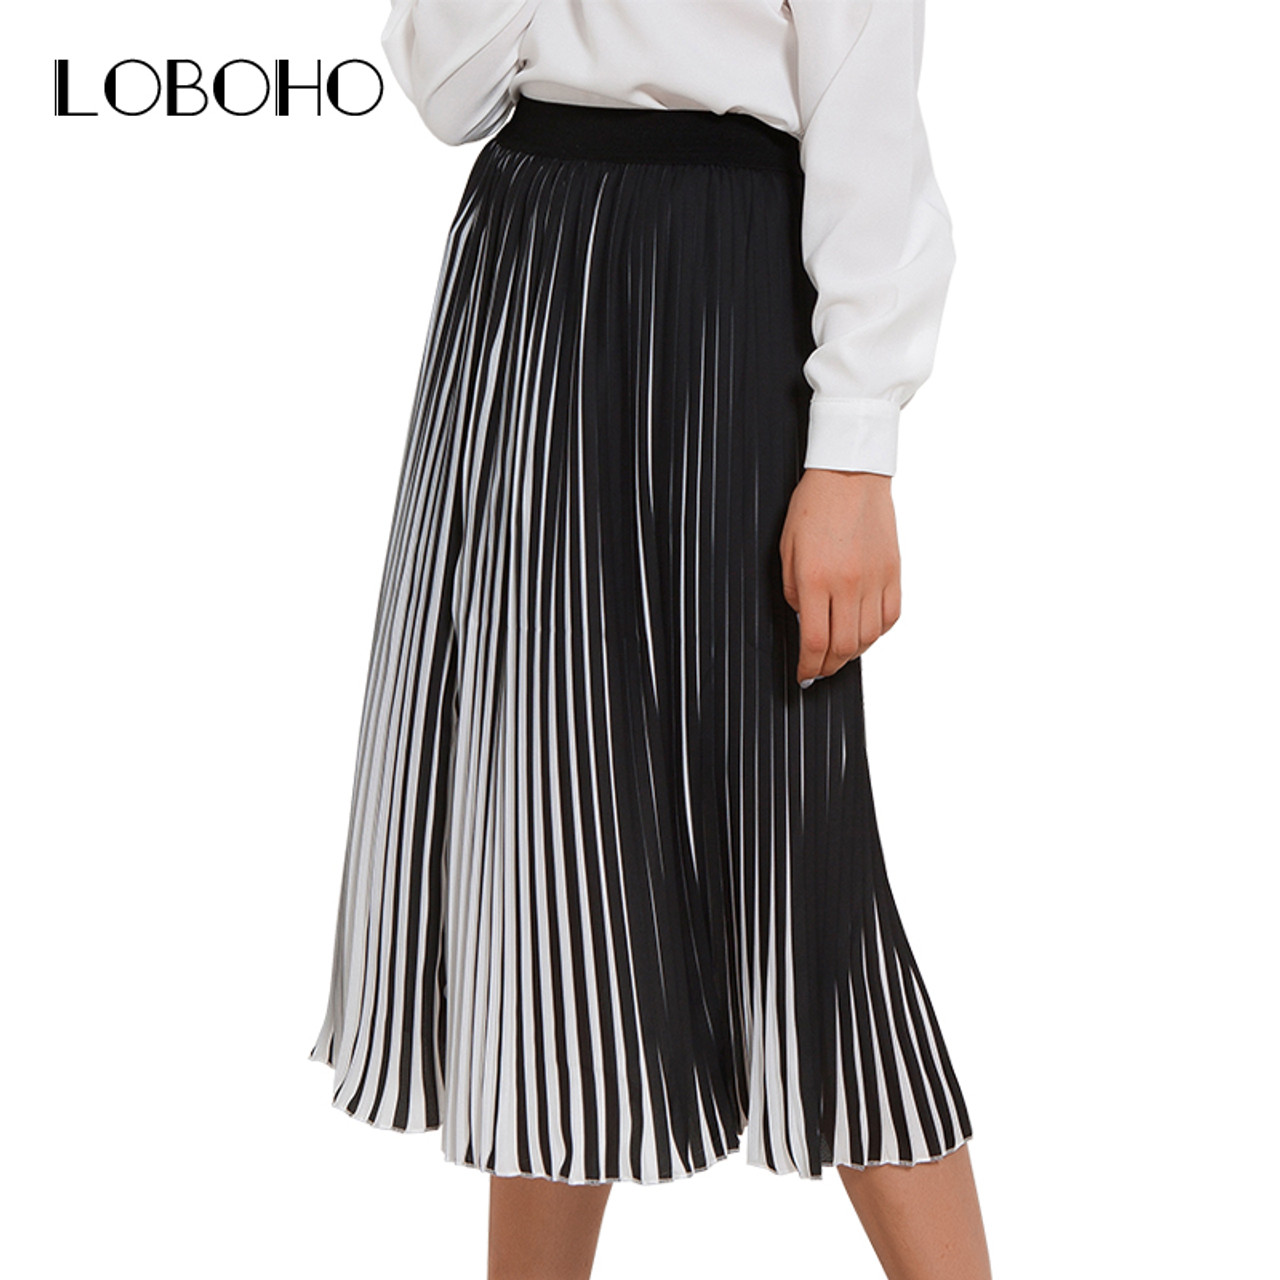 85fa8722a6e Casual Pleated Skirts Womens Spring 2018 New Fashion Chiffon Long Skirt  Black And White Striped Elastic ...